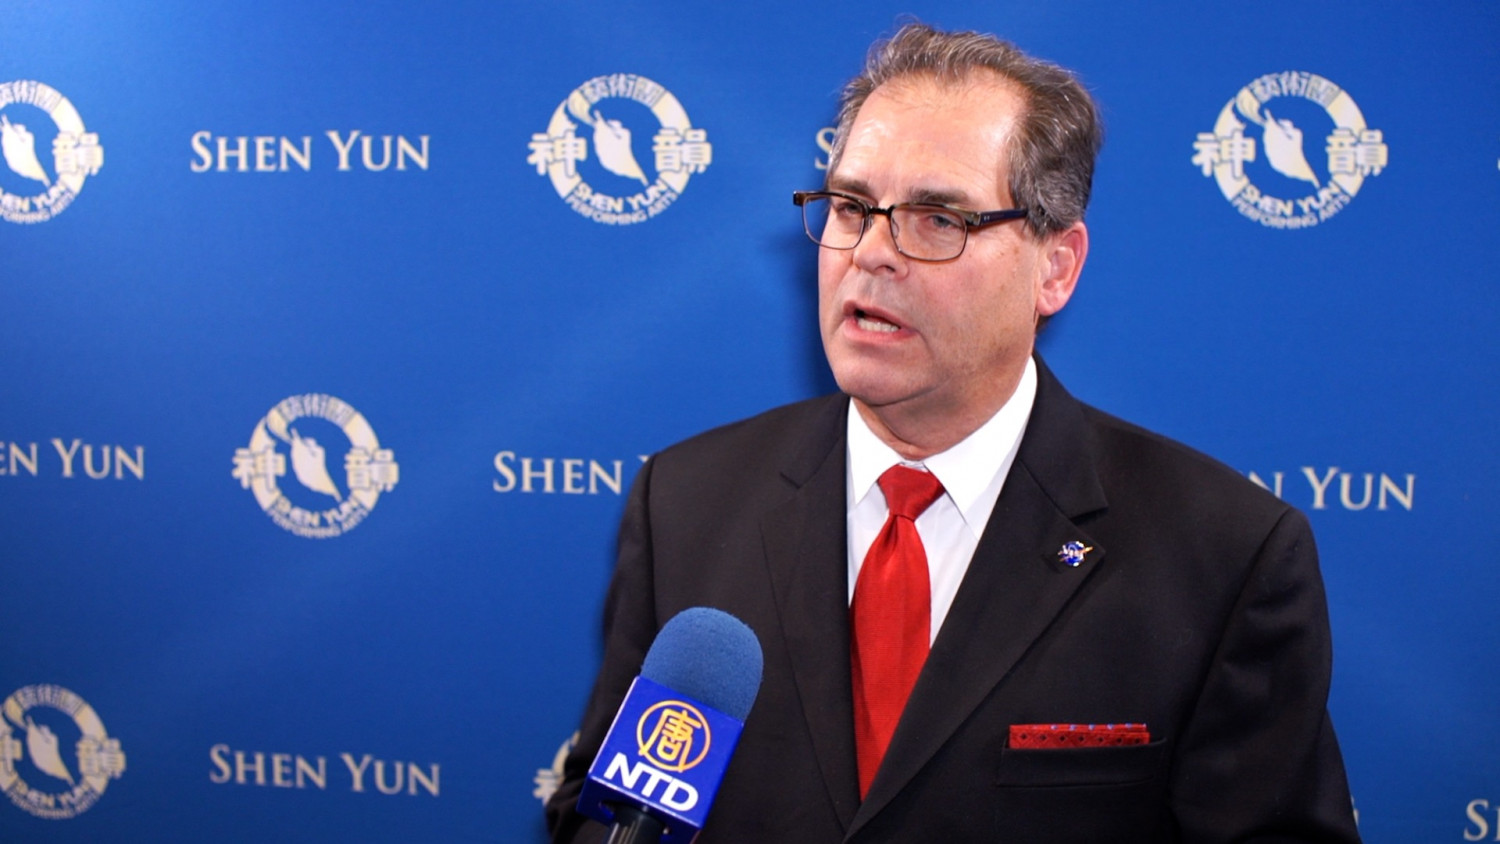 Television and Radio Hosts Expresses Appreciation for Shen Yun's Spirituality